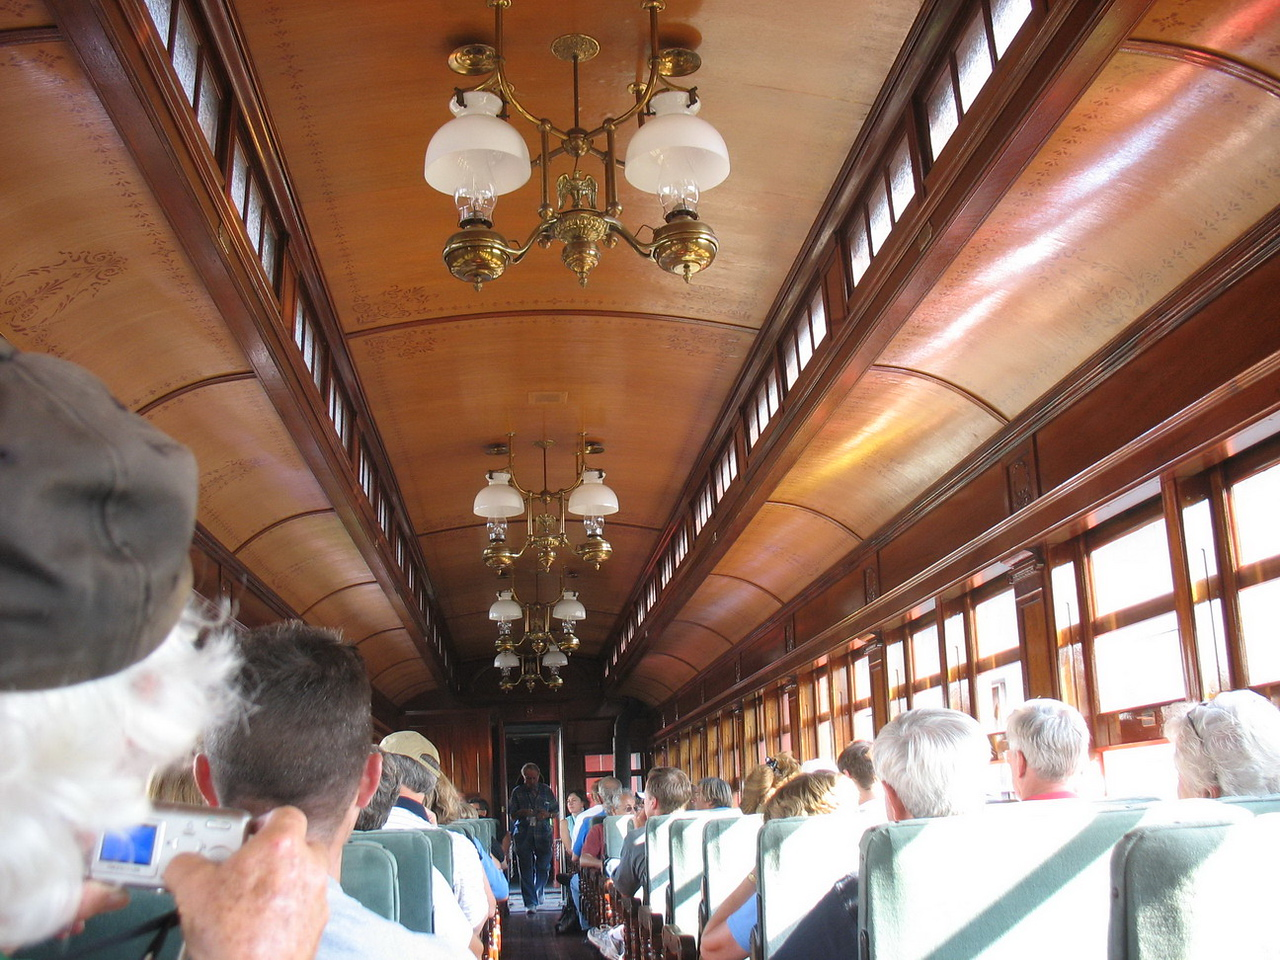 Interior of the car in which we were riding. All of the cars and engines have been restored at the Strasburg Rail Road.